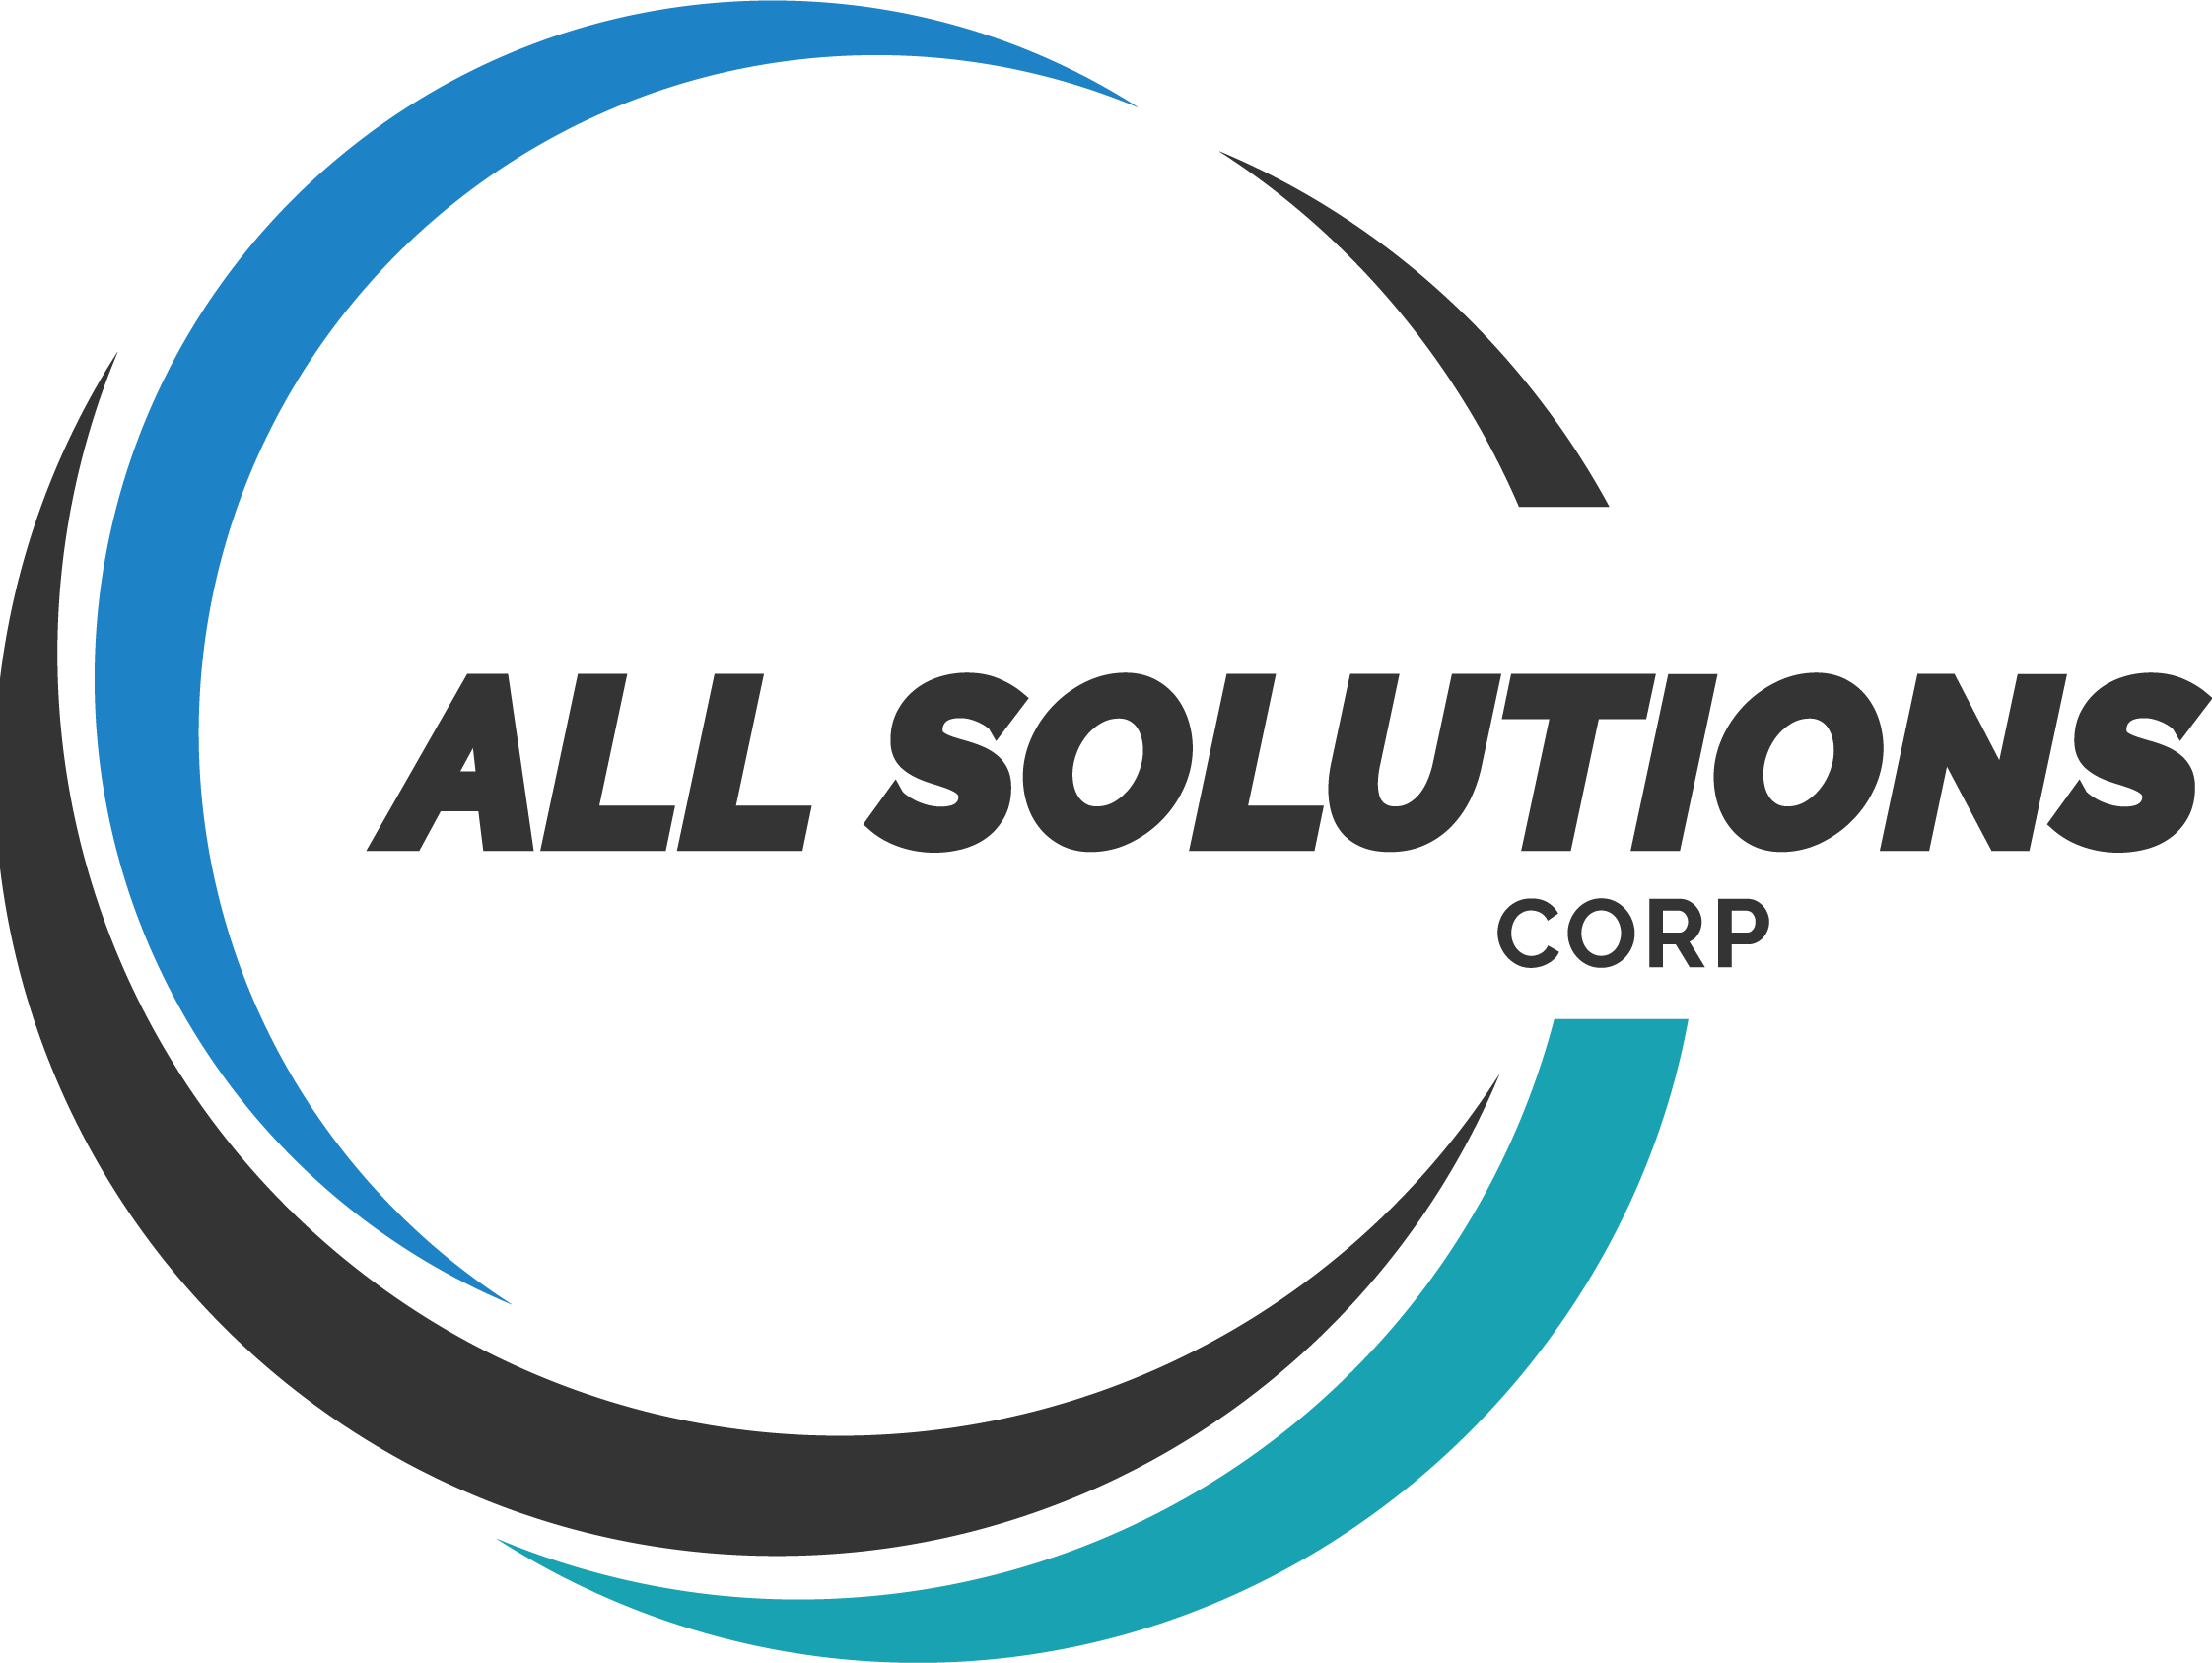 All Solutions Corp